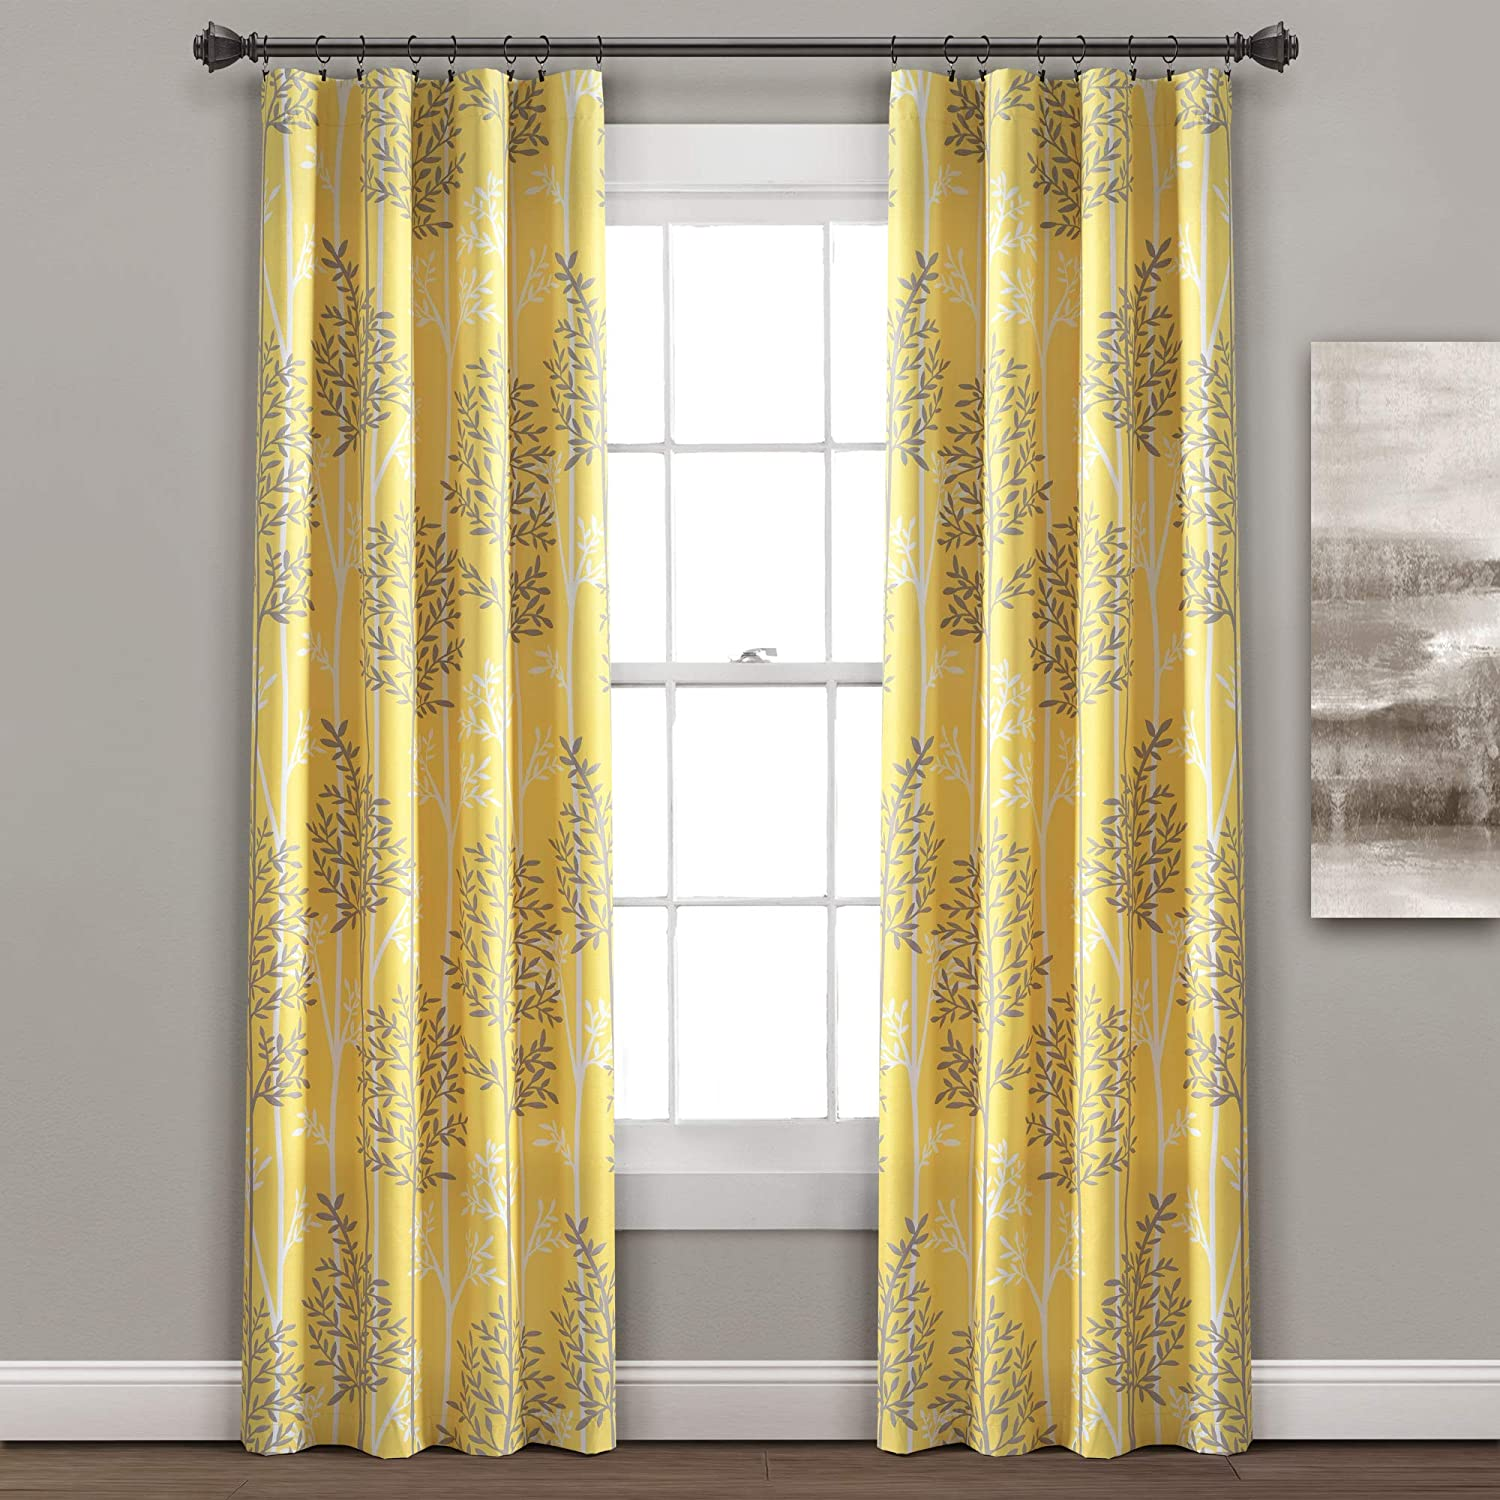 "Lush Decor Yellow and Gray Linear Tree Blackout Grommet Window Curtain Panel Pair (84"" x 38""), Yellow & Gray"